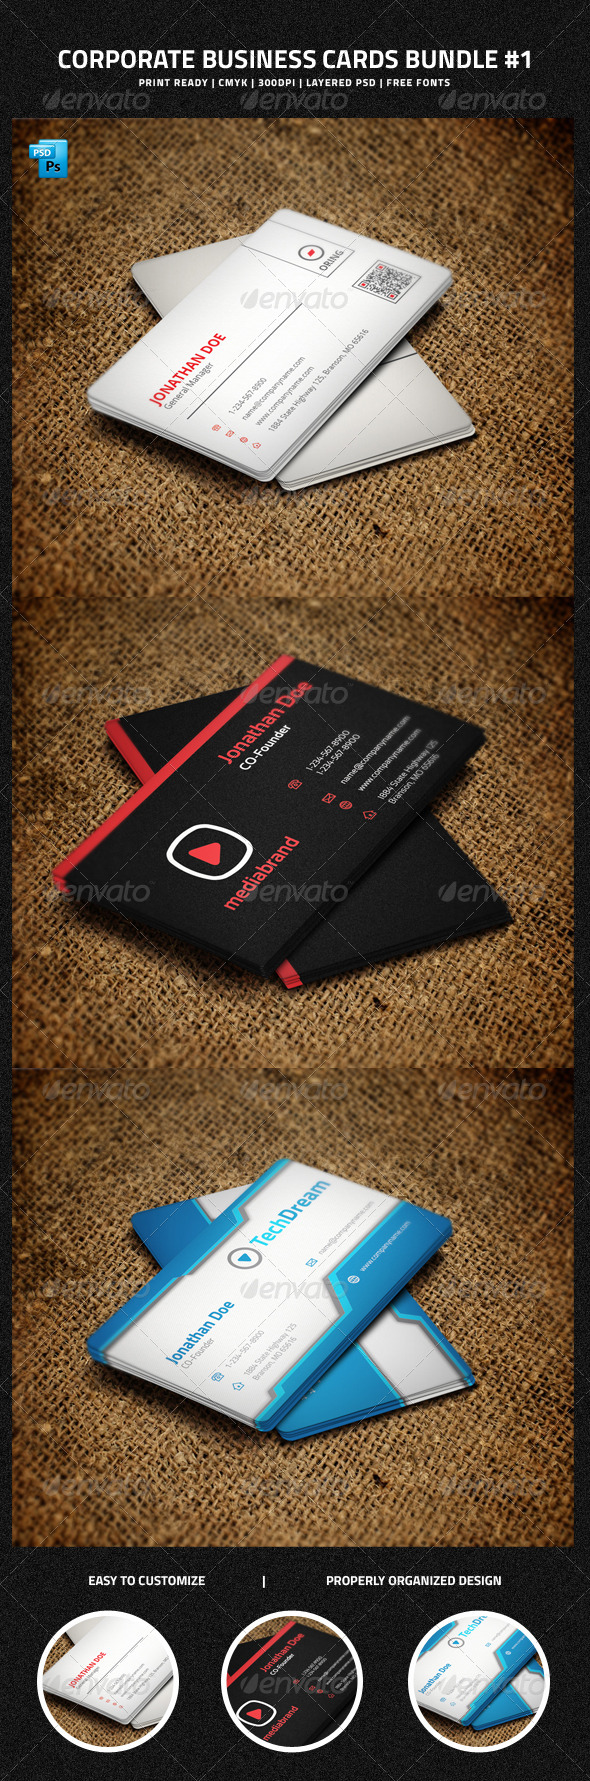 GraphicRiver Corporate Business Cards Bundle #1 6385613